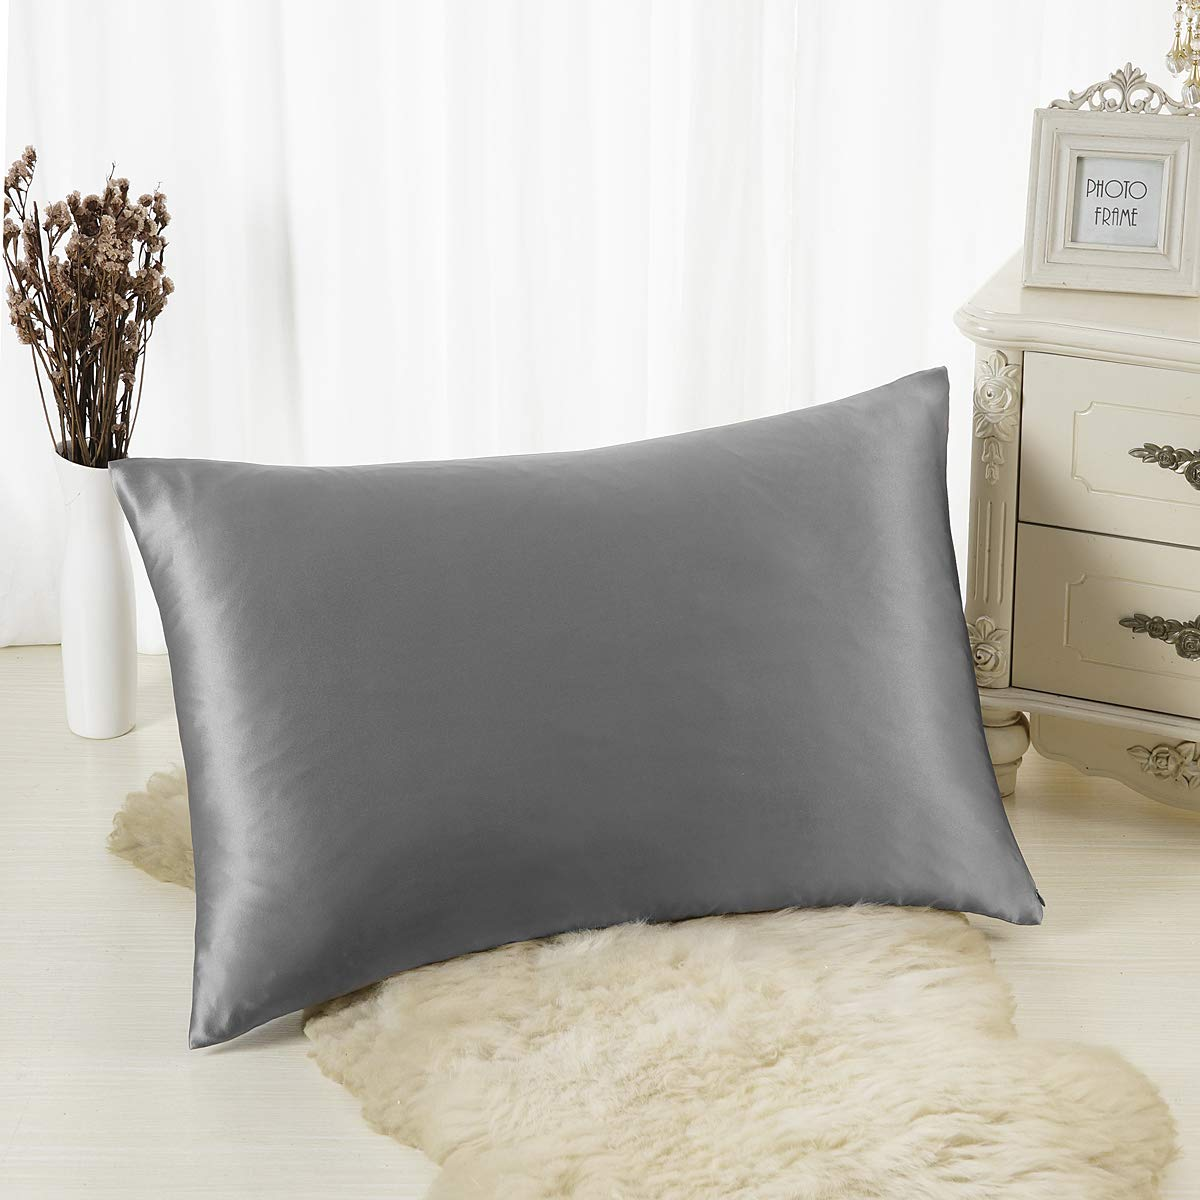 ALASKA BEAR Natural Silk Pillowcase for Hair and Skin 19 Momme 600 Thread Count 100 Percent Hypoallergenic Mulberry Silk Pillow Slip Queen Size with Hidden Zipper (1, Iron Grey) by ALASKA BEAR (Image #2)